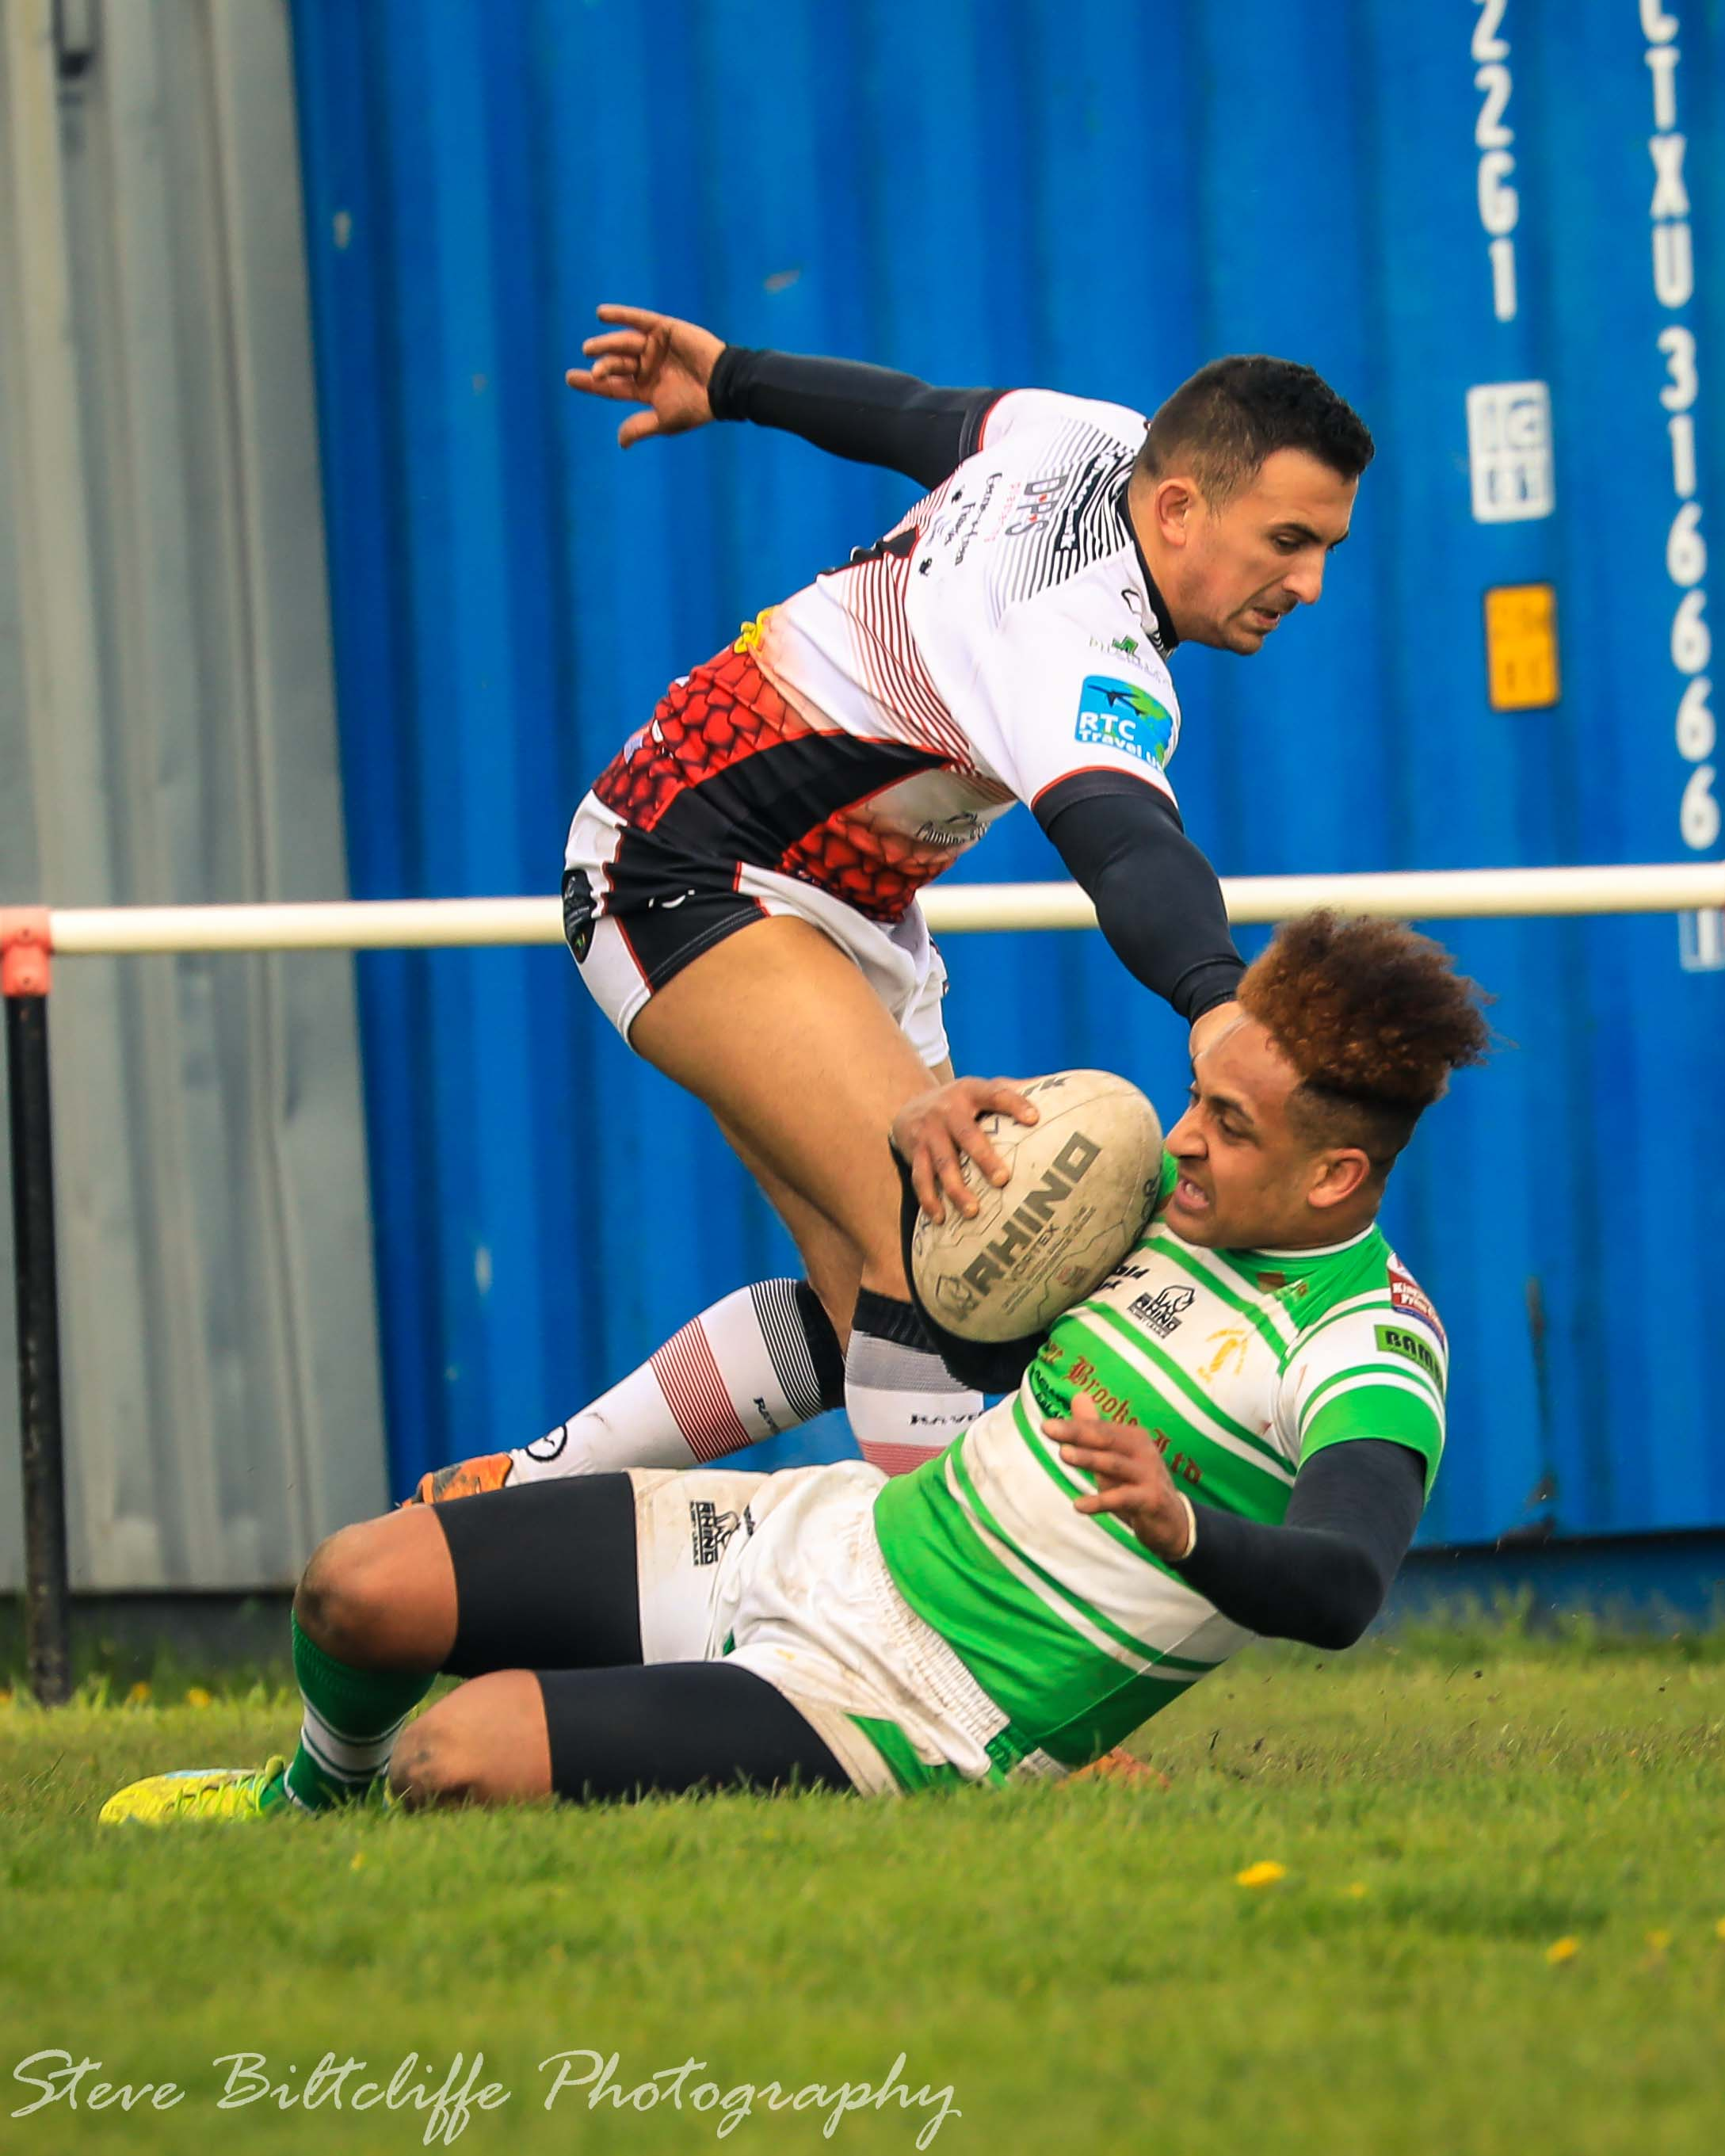 Covering a range of local sporting events from Cricket to Rugby League. Find out more by clicking on  Sports Photography